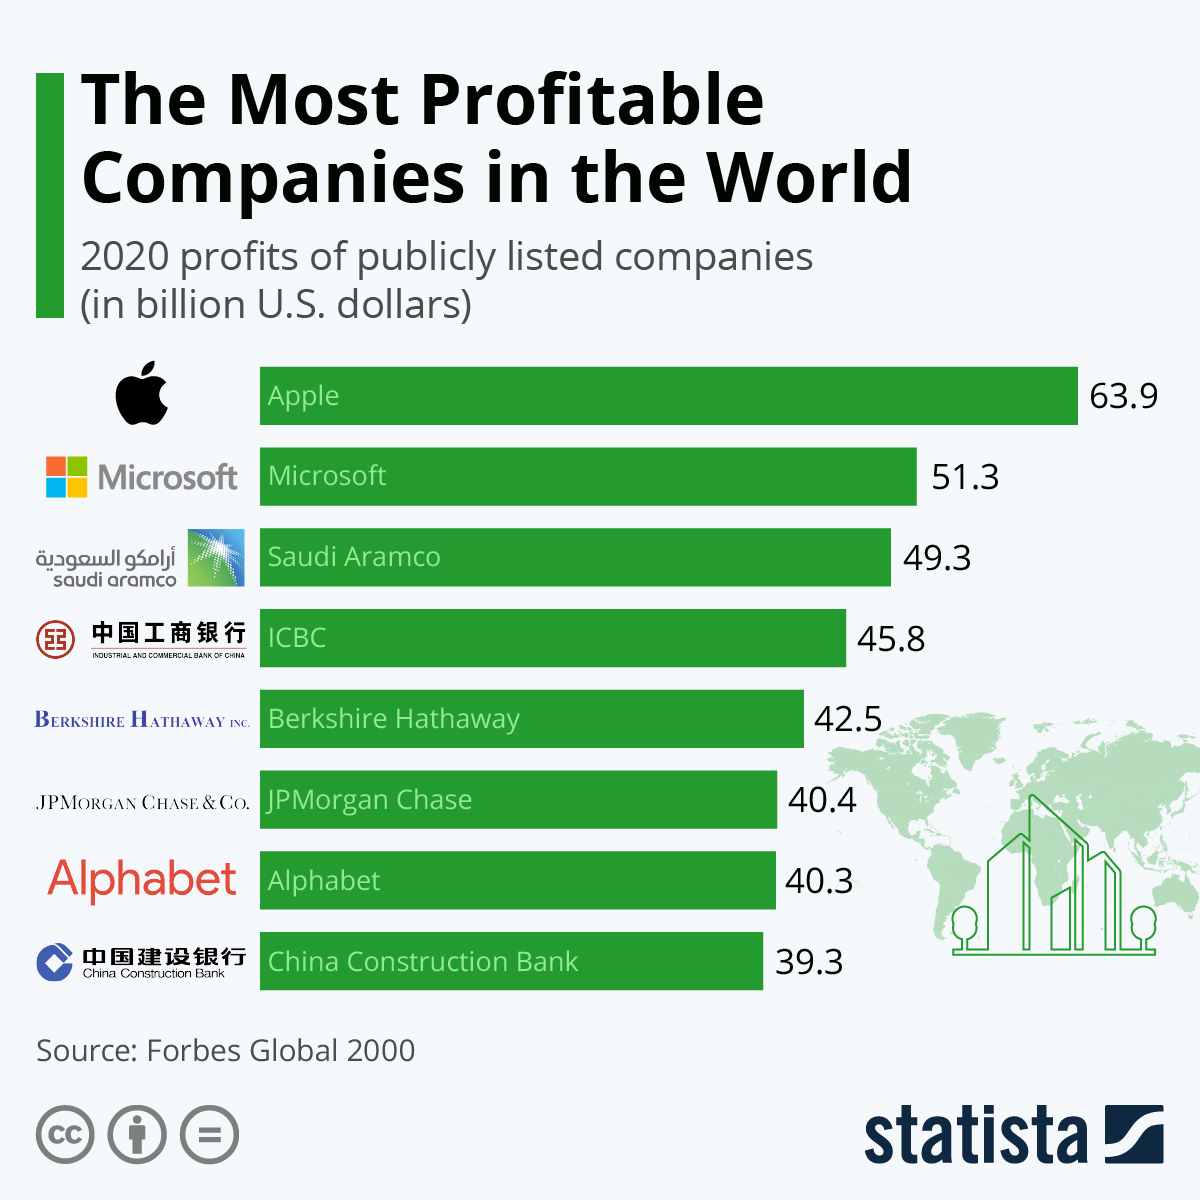 The Most Profitable Companies in the World